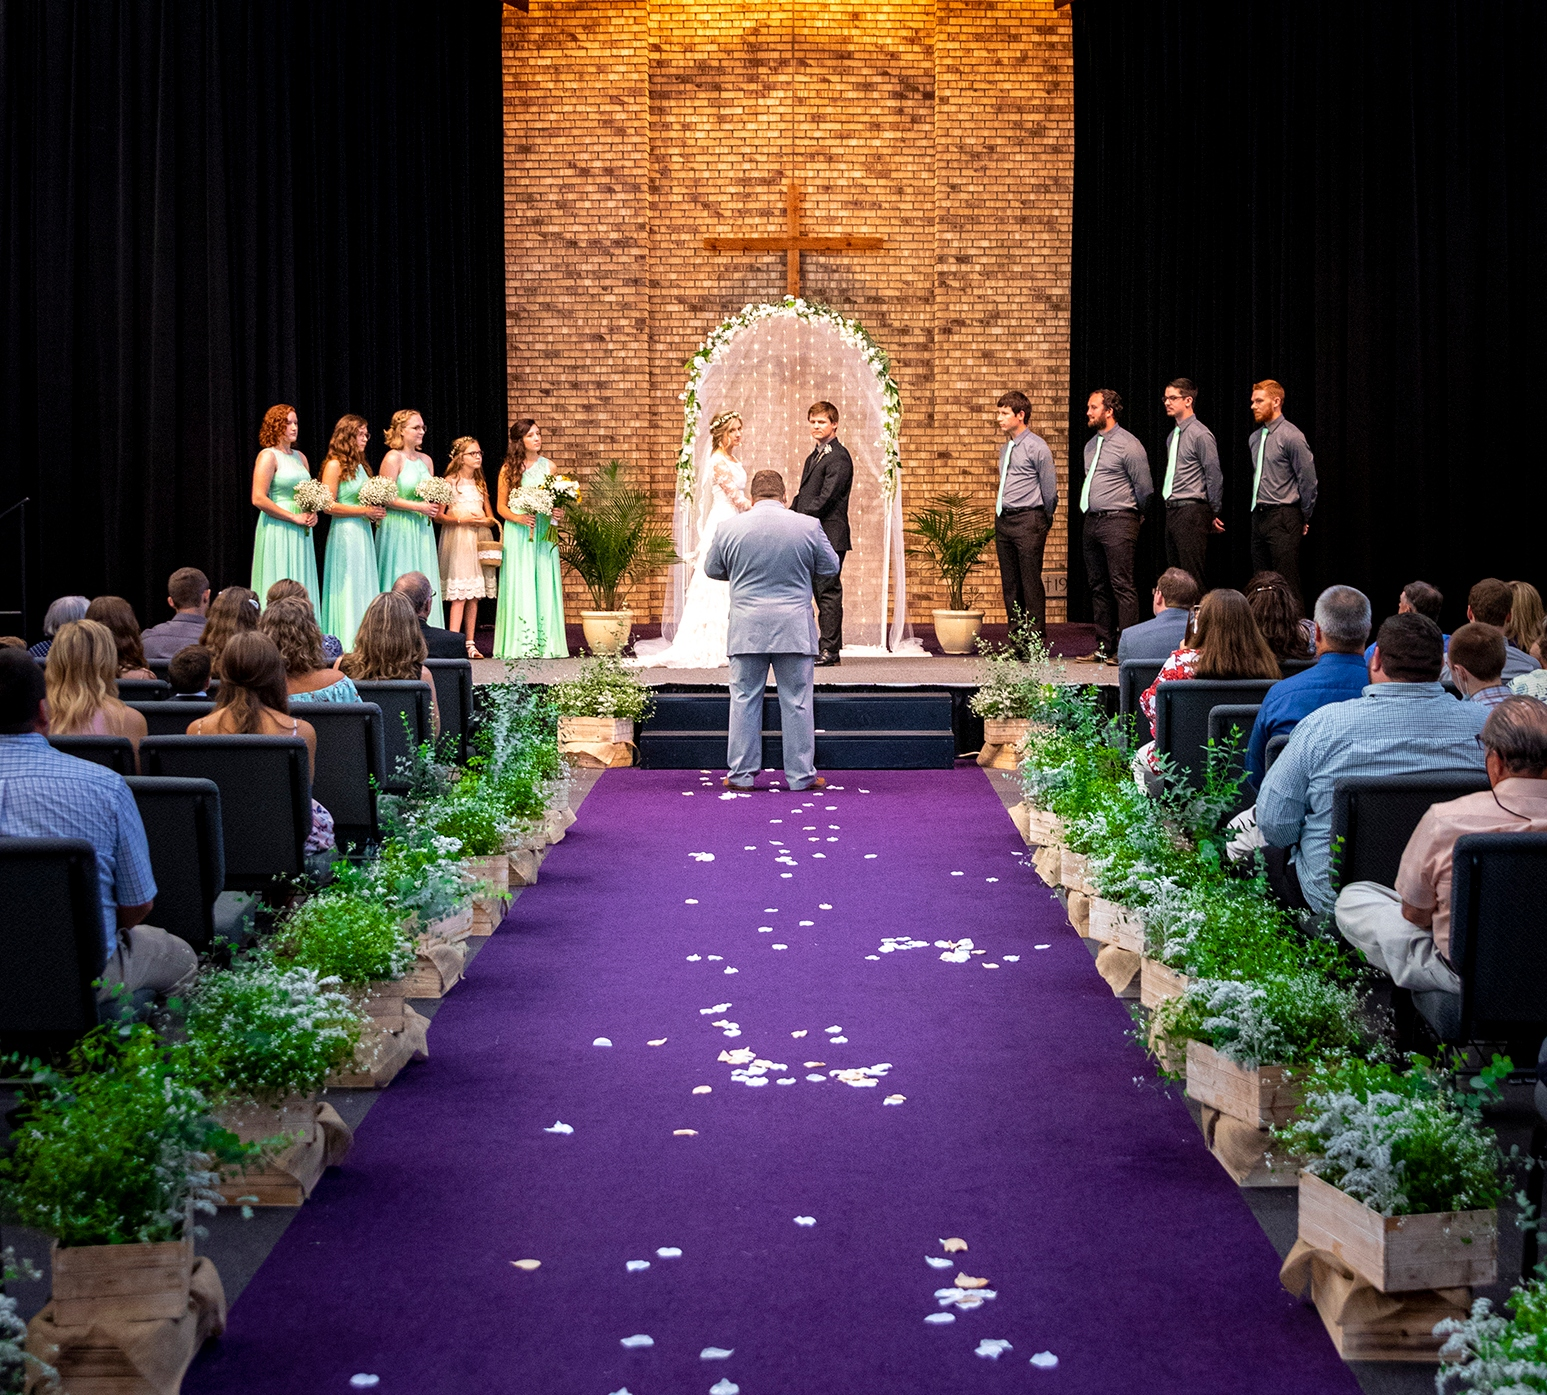 The new trend of simpler weddings is not only frugal, it's so much more personal!